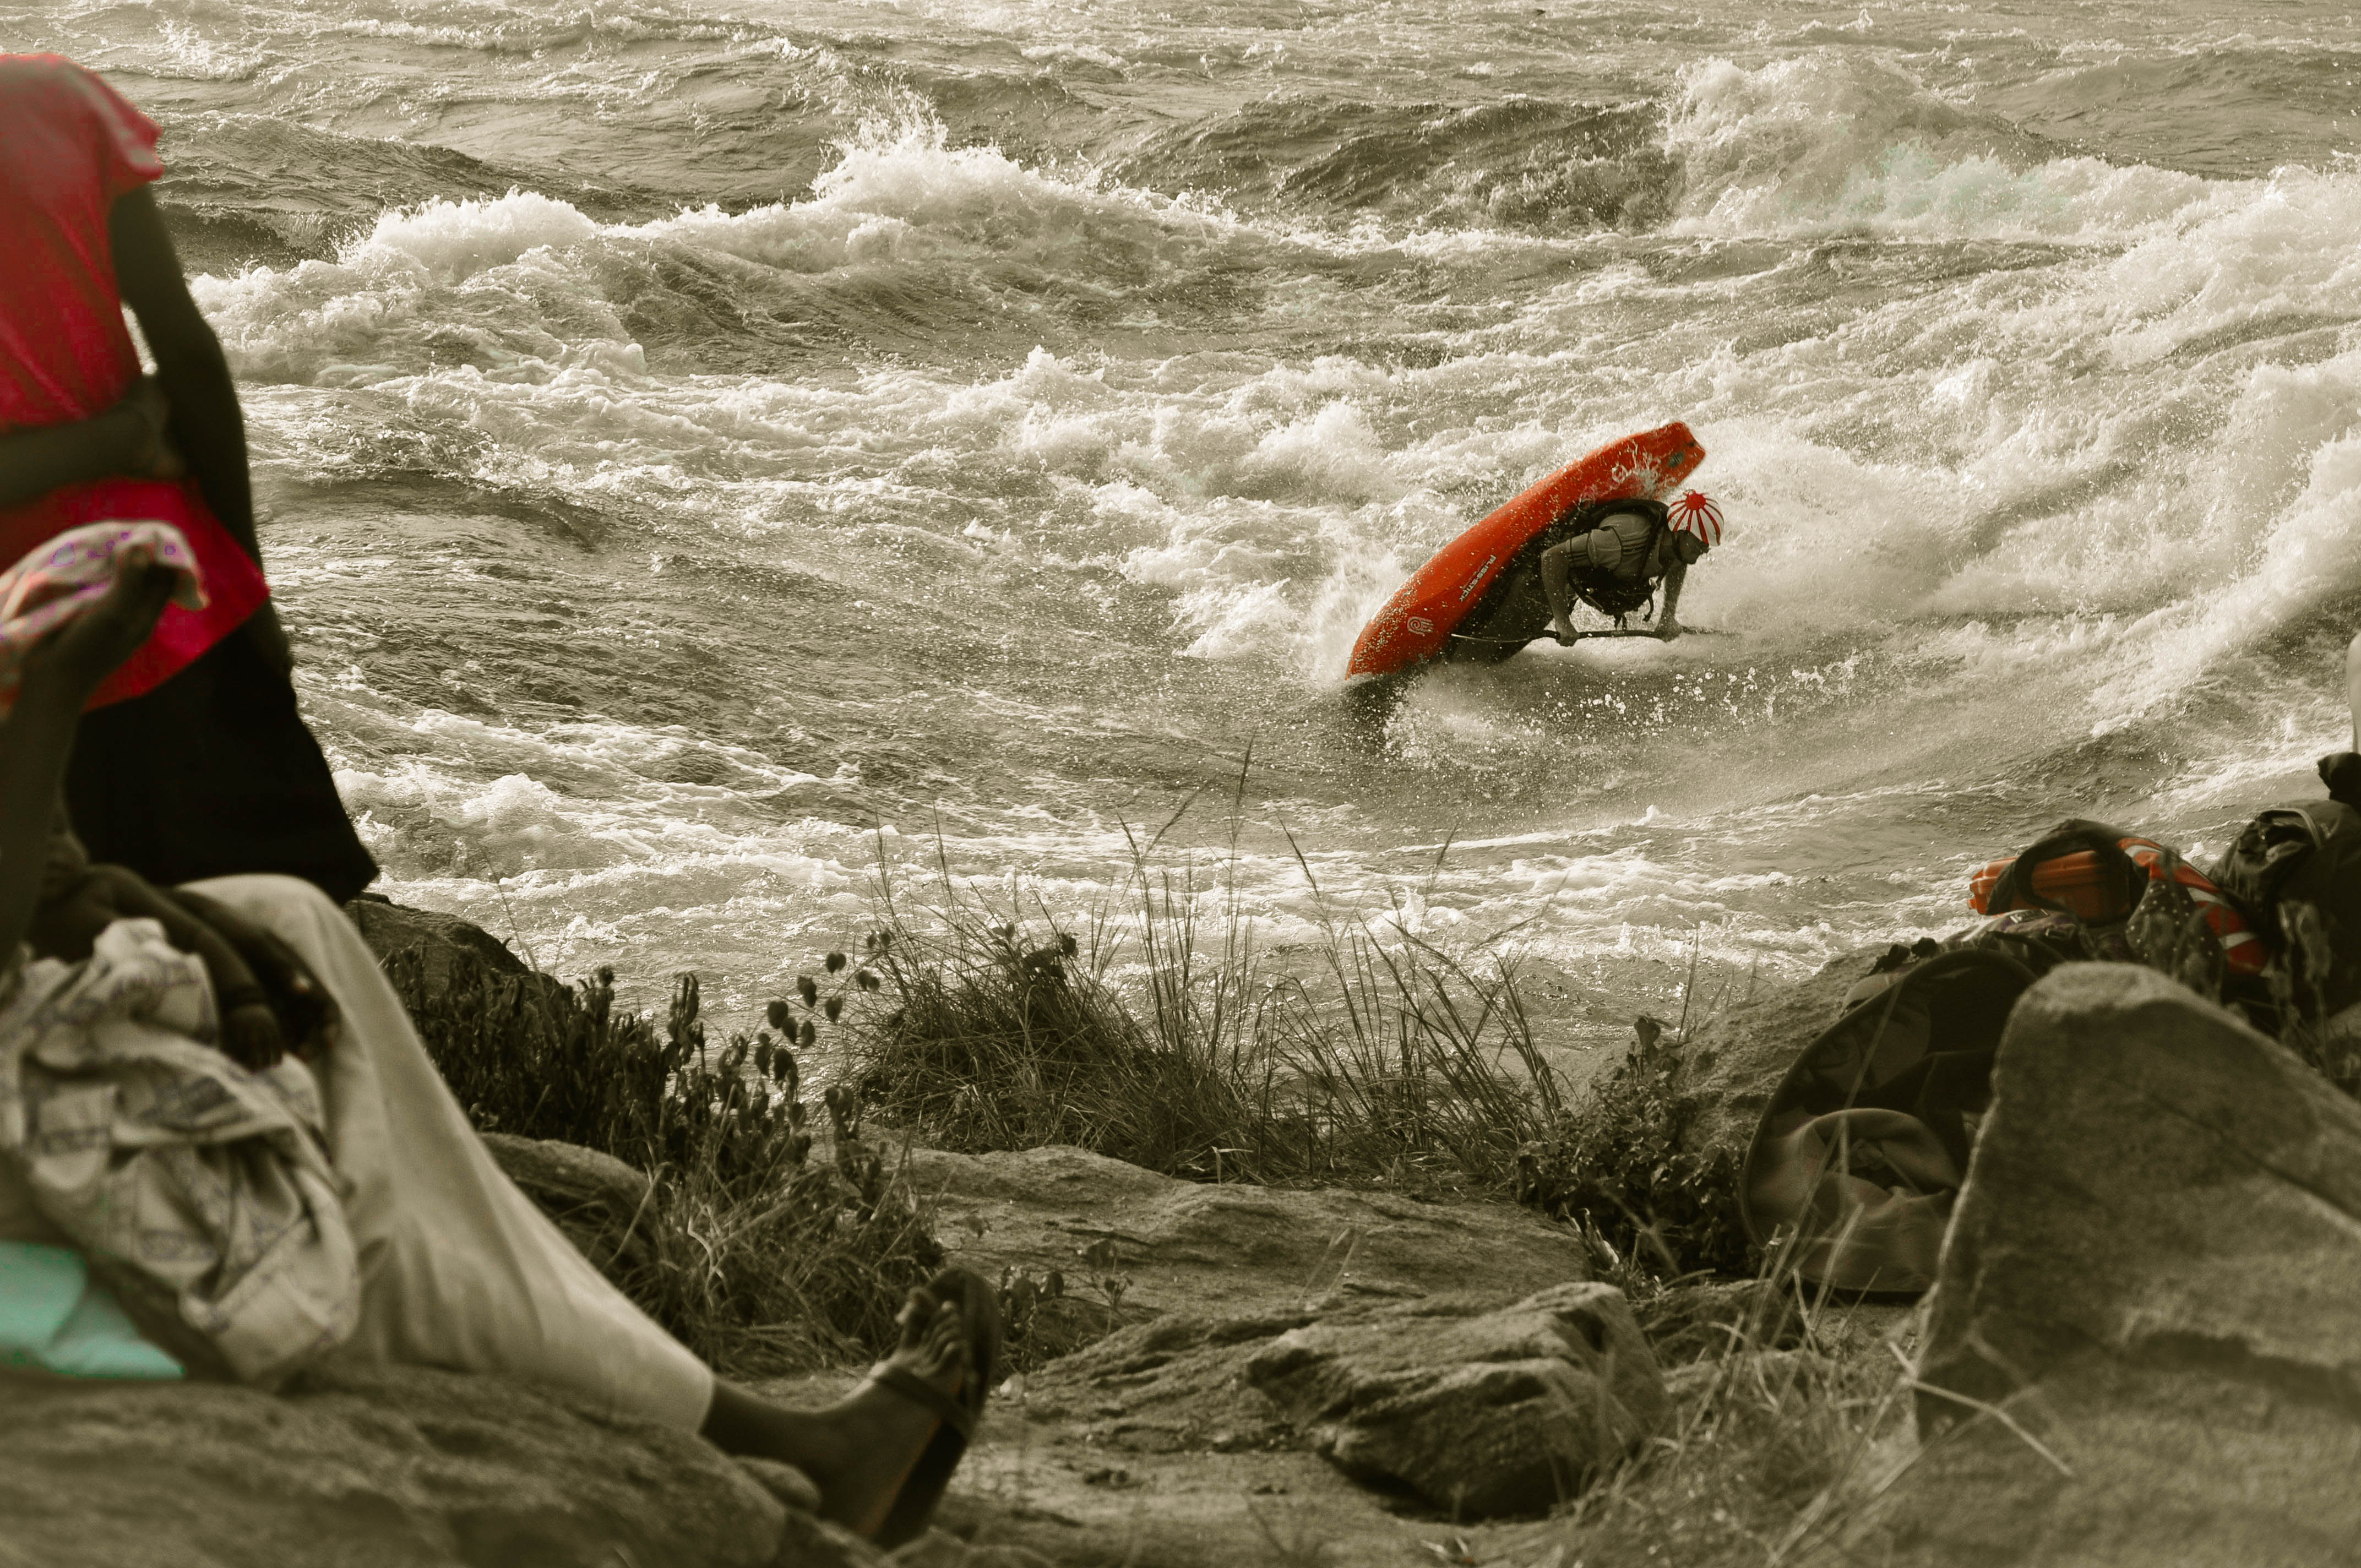 Kayak and Canoe Tino Specht throwing a Pan-Am on the Nile  Special, Uganda